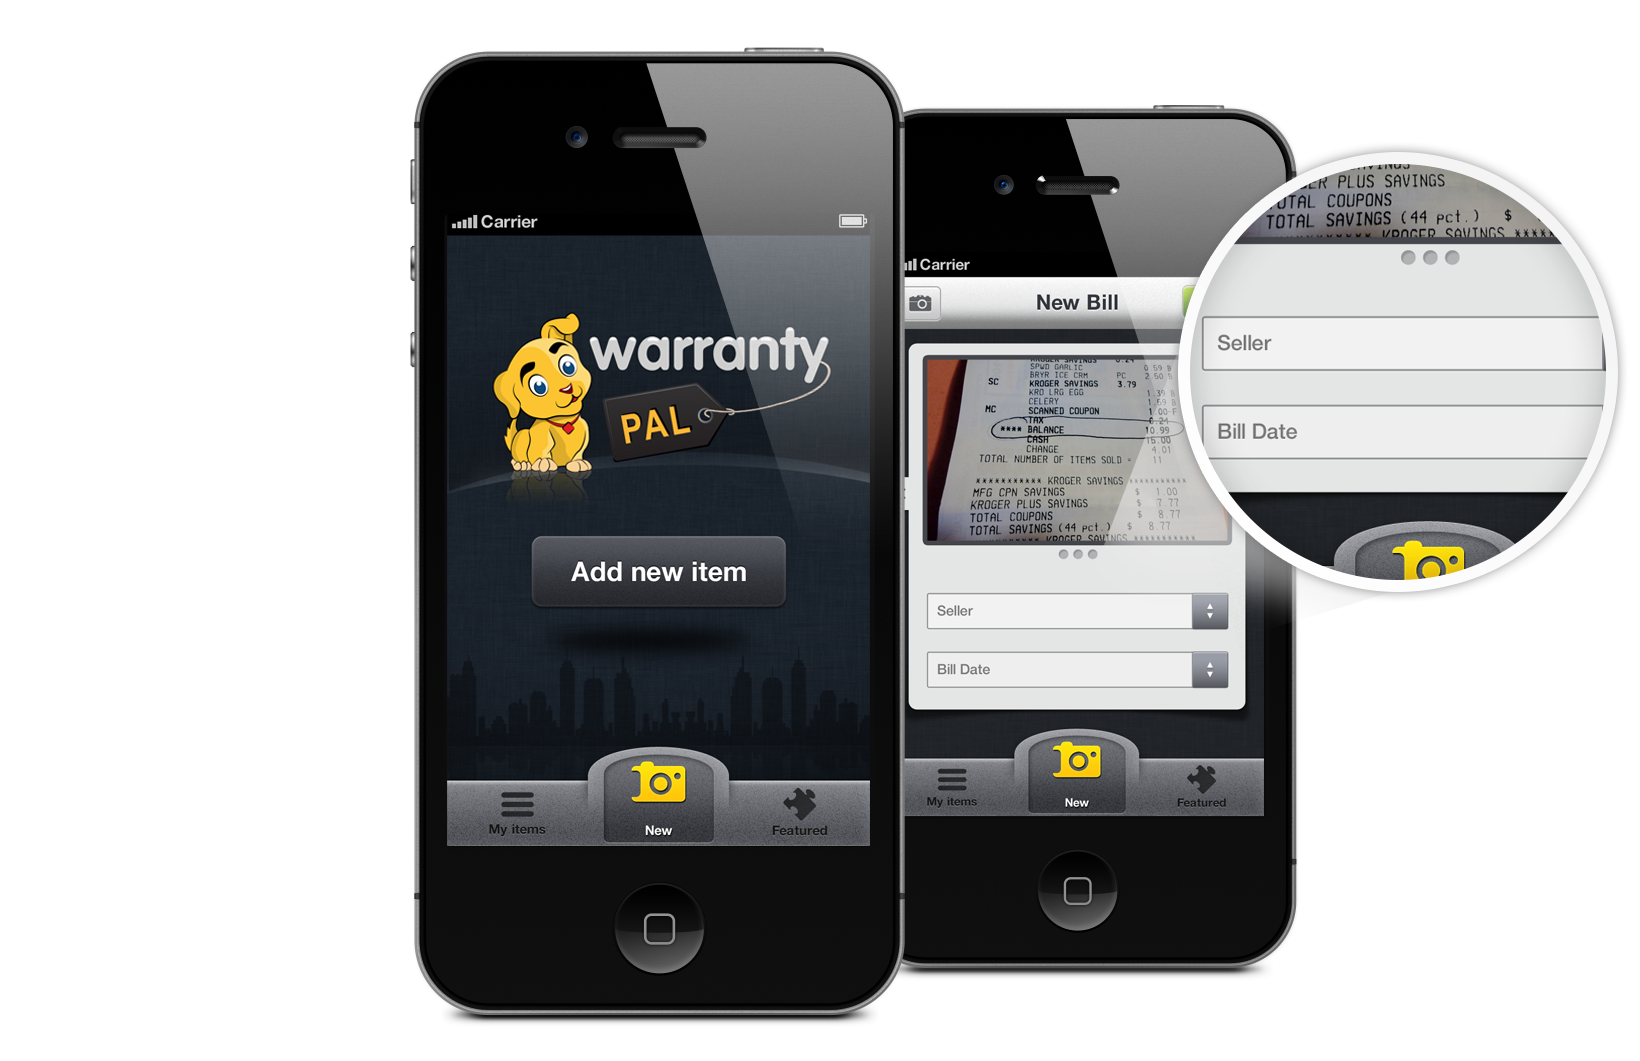 warranty pal home inventory software